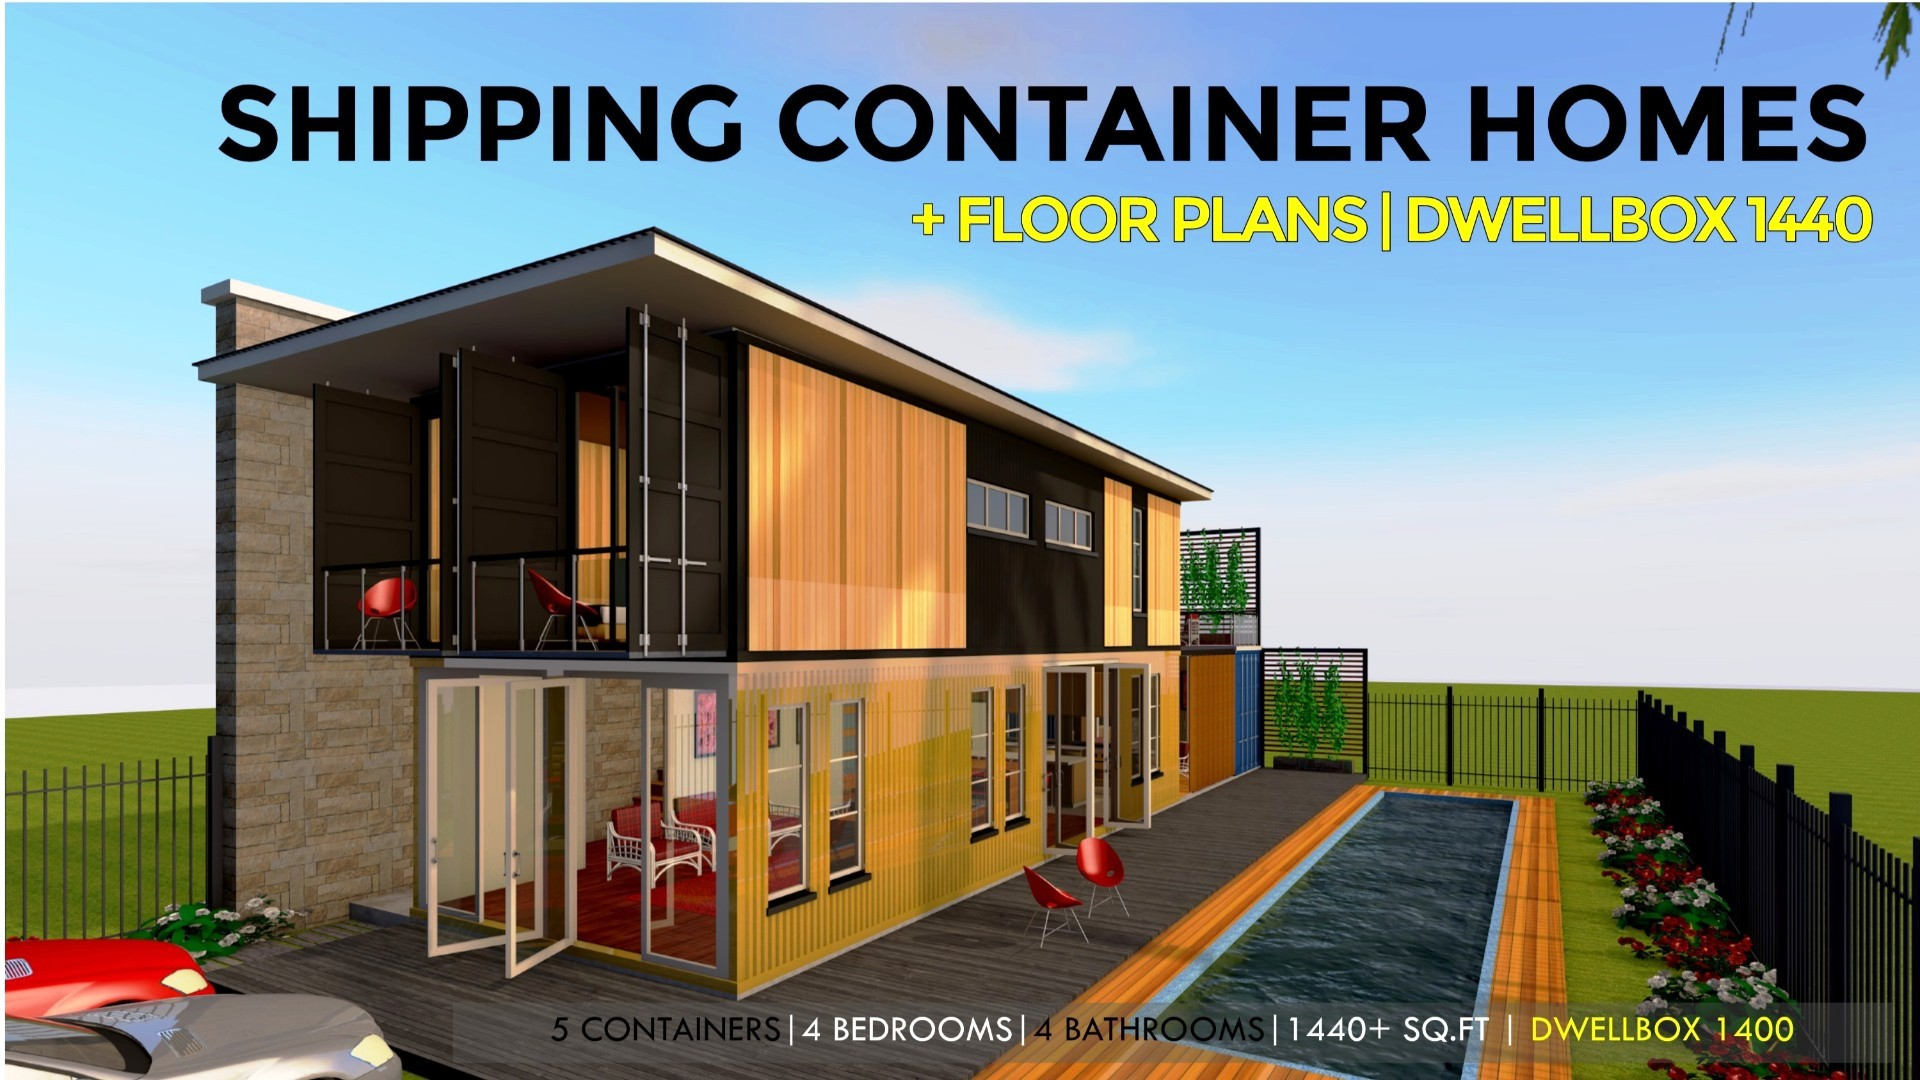 Modern Shipping Container Home dwellbox 1400 | id. s24501400 | 4 beds | 5 baths | 1400+sft.|